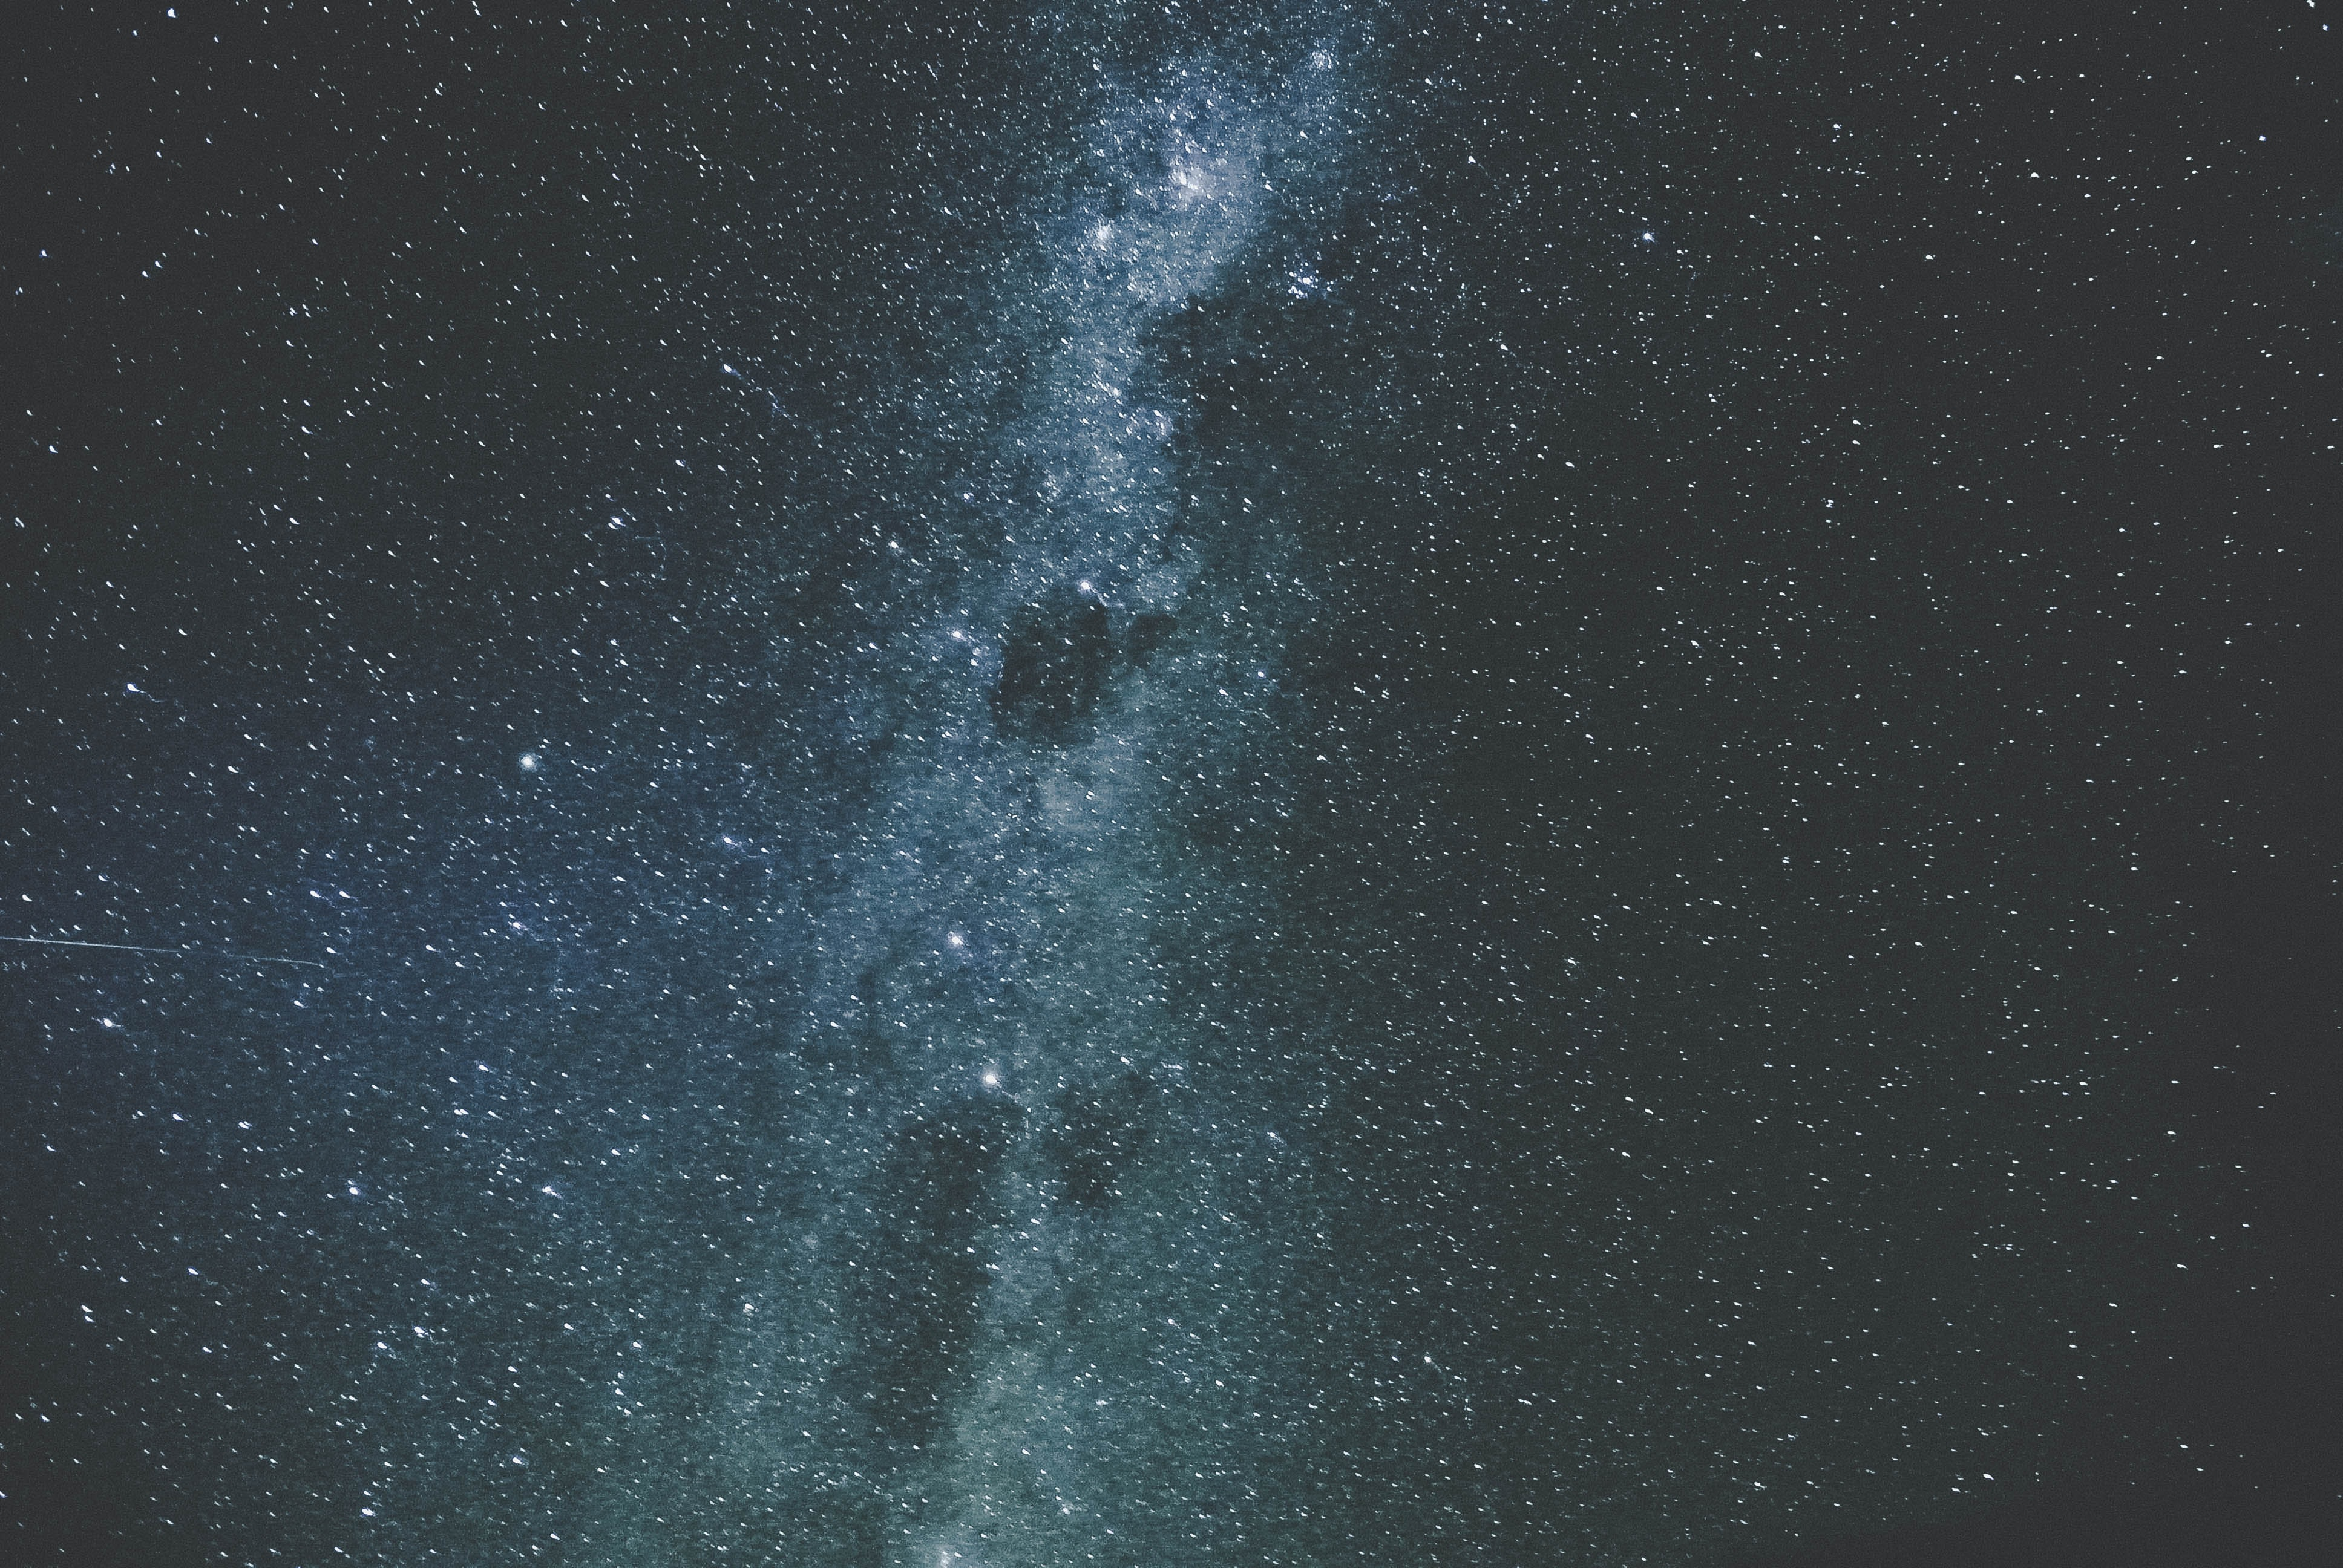 A closeup photograph of the Milky Way as seen from Wanaka.